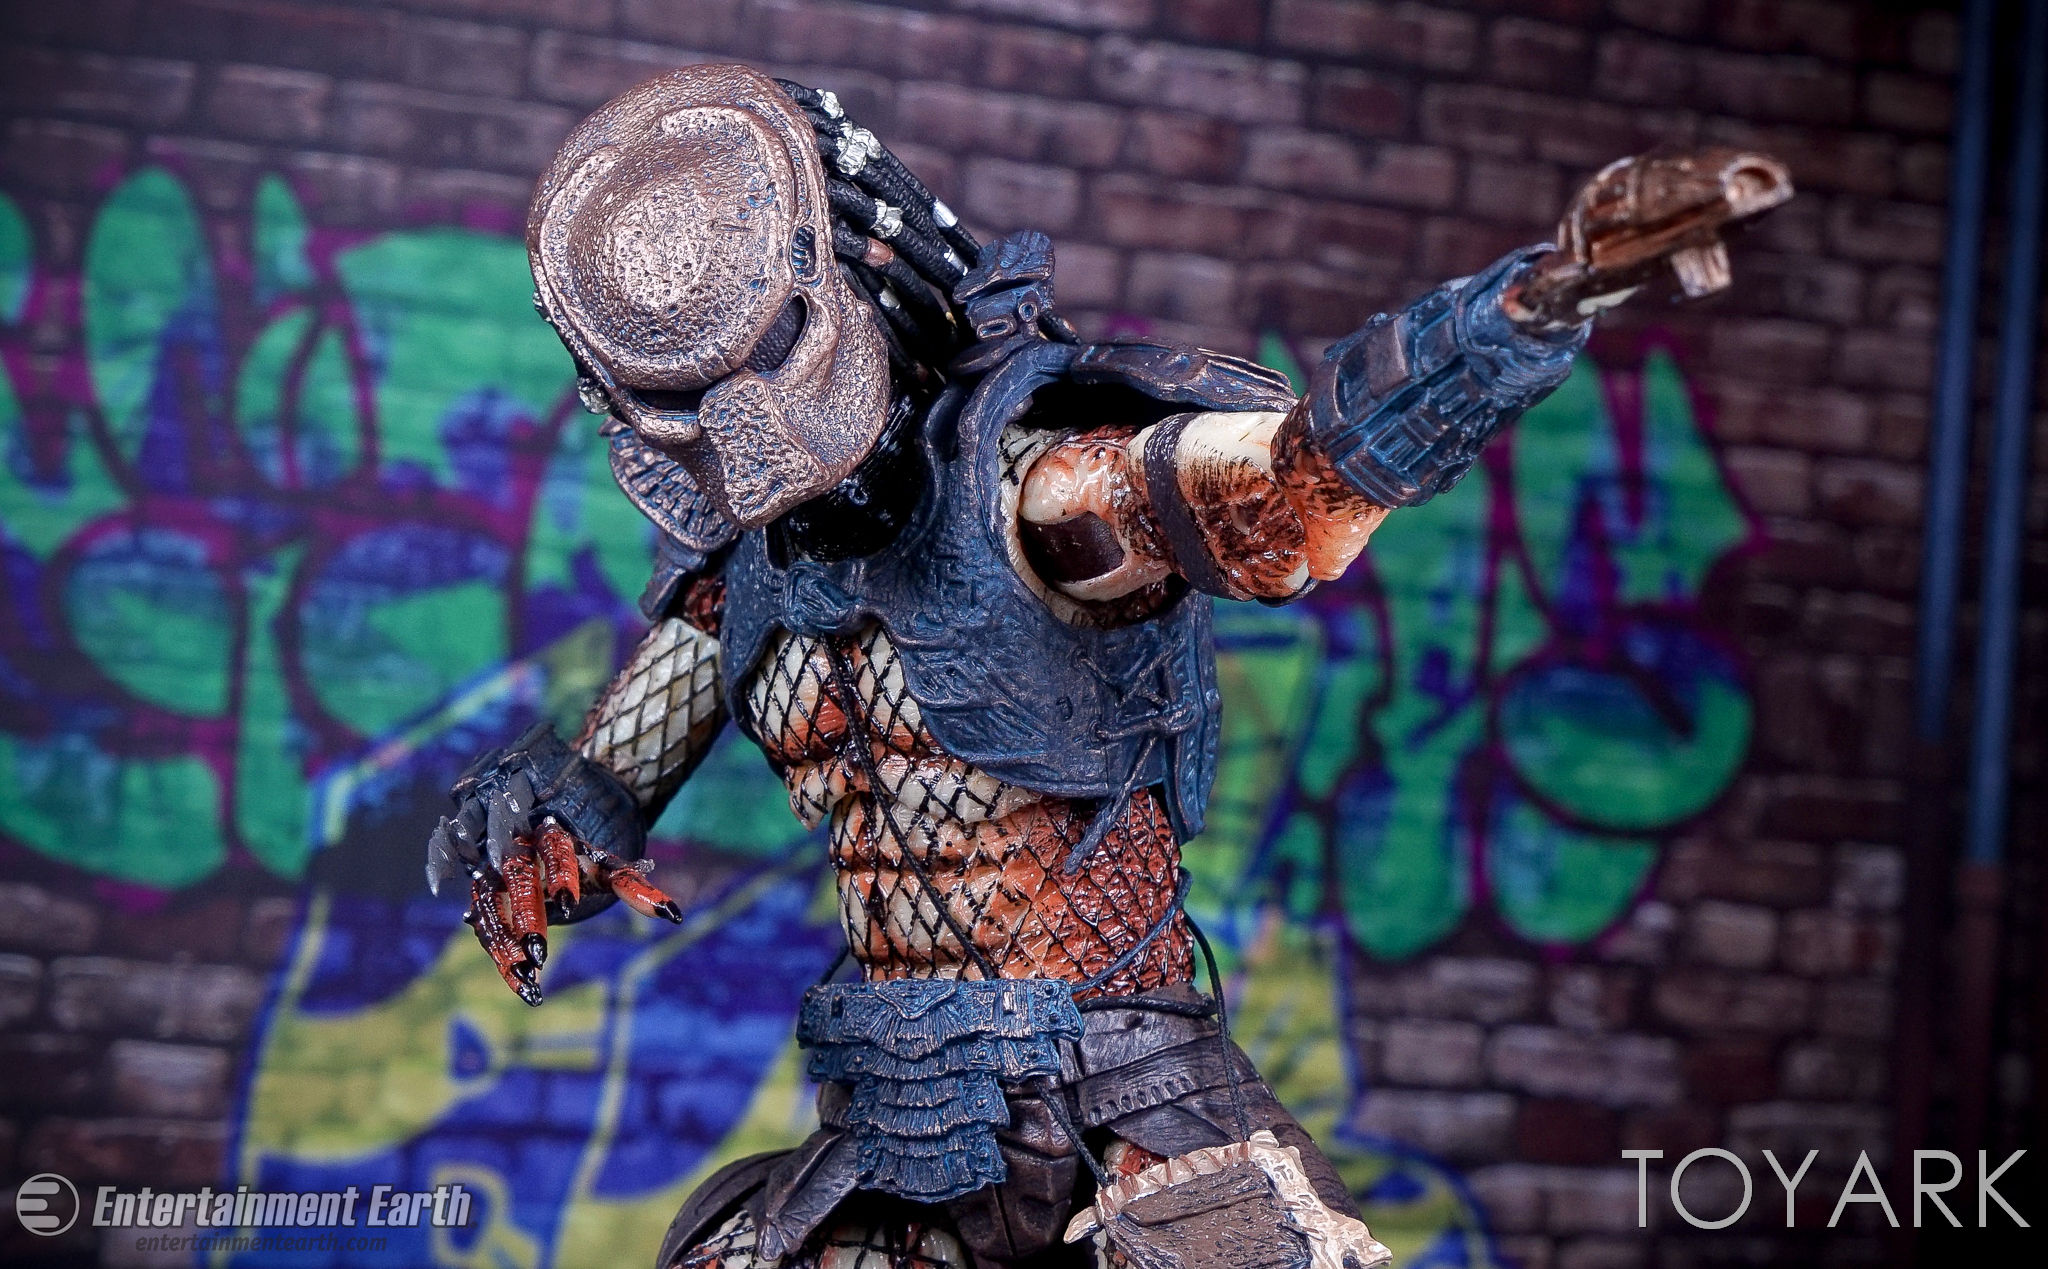 http://news.toyark.com/wp-content/uploads/sites/4/2017/03/NECA-Ultimate-City-Hunter-Predator-027.jpg